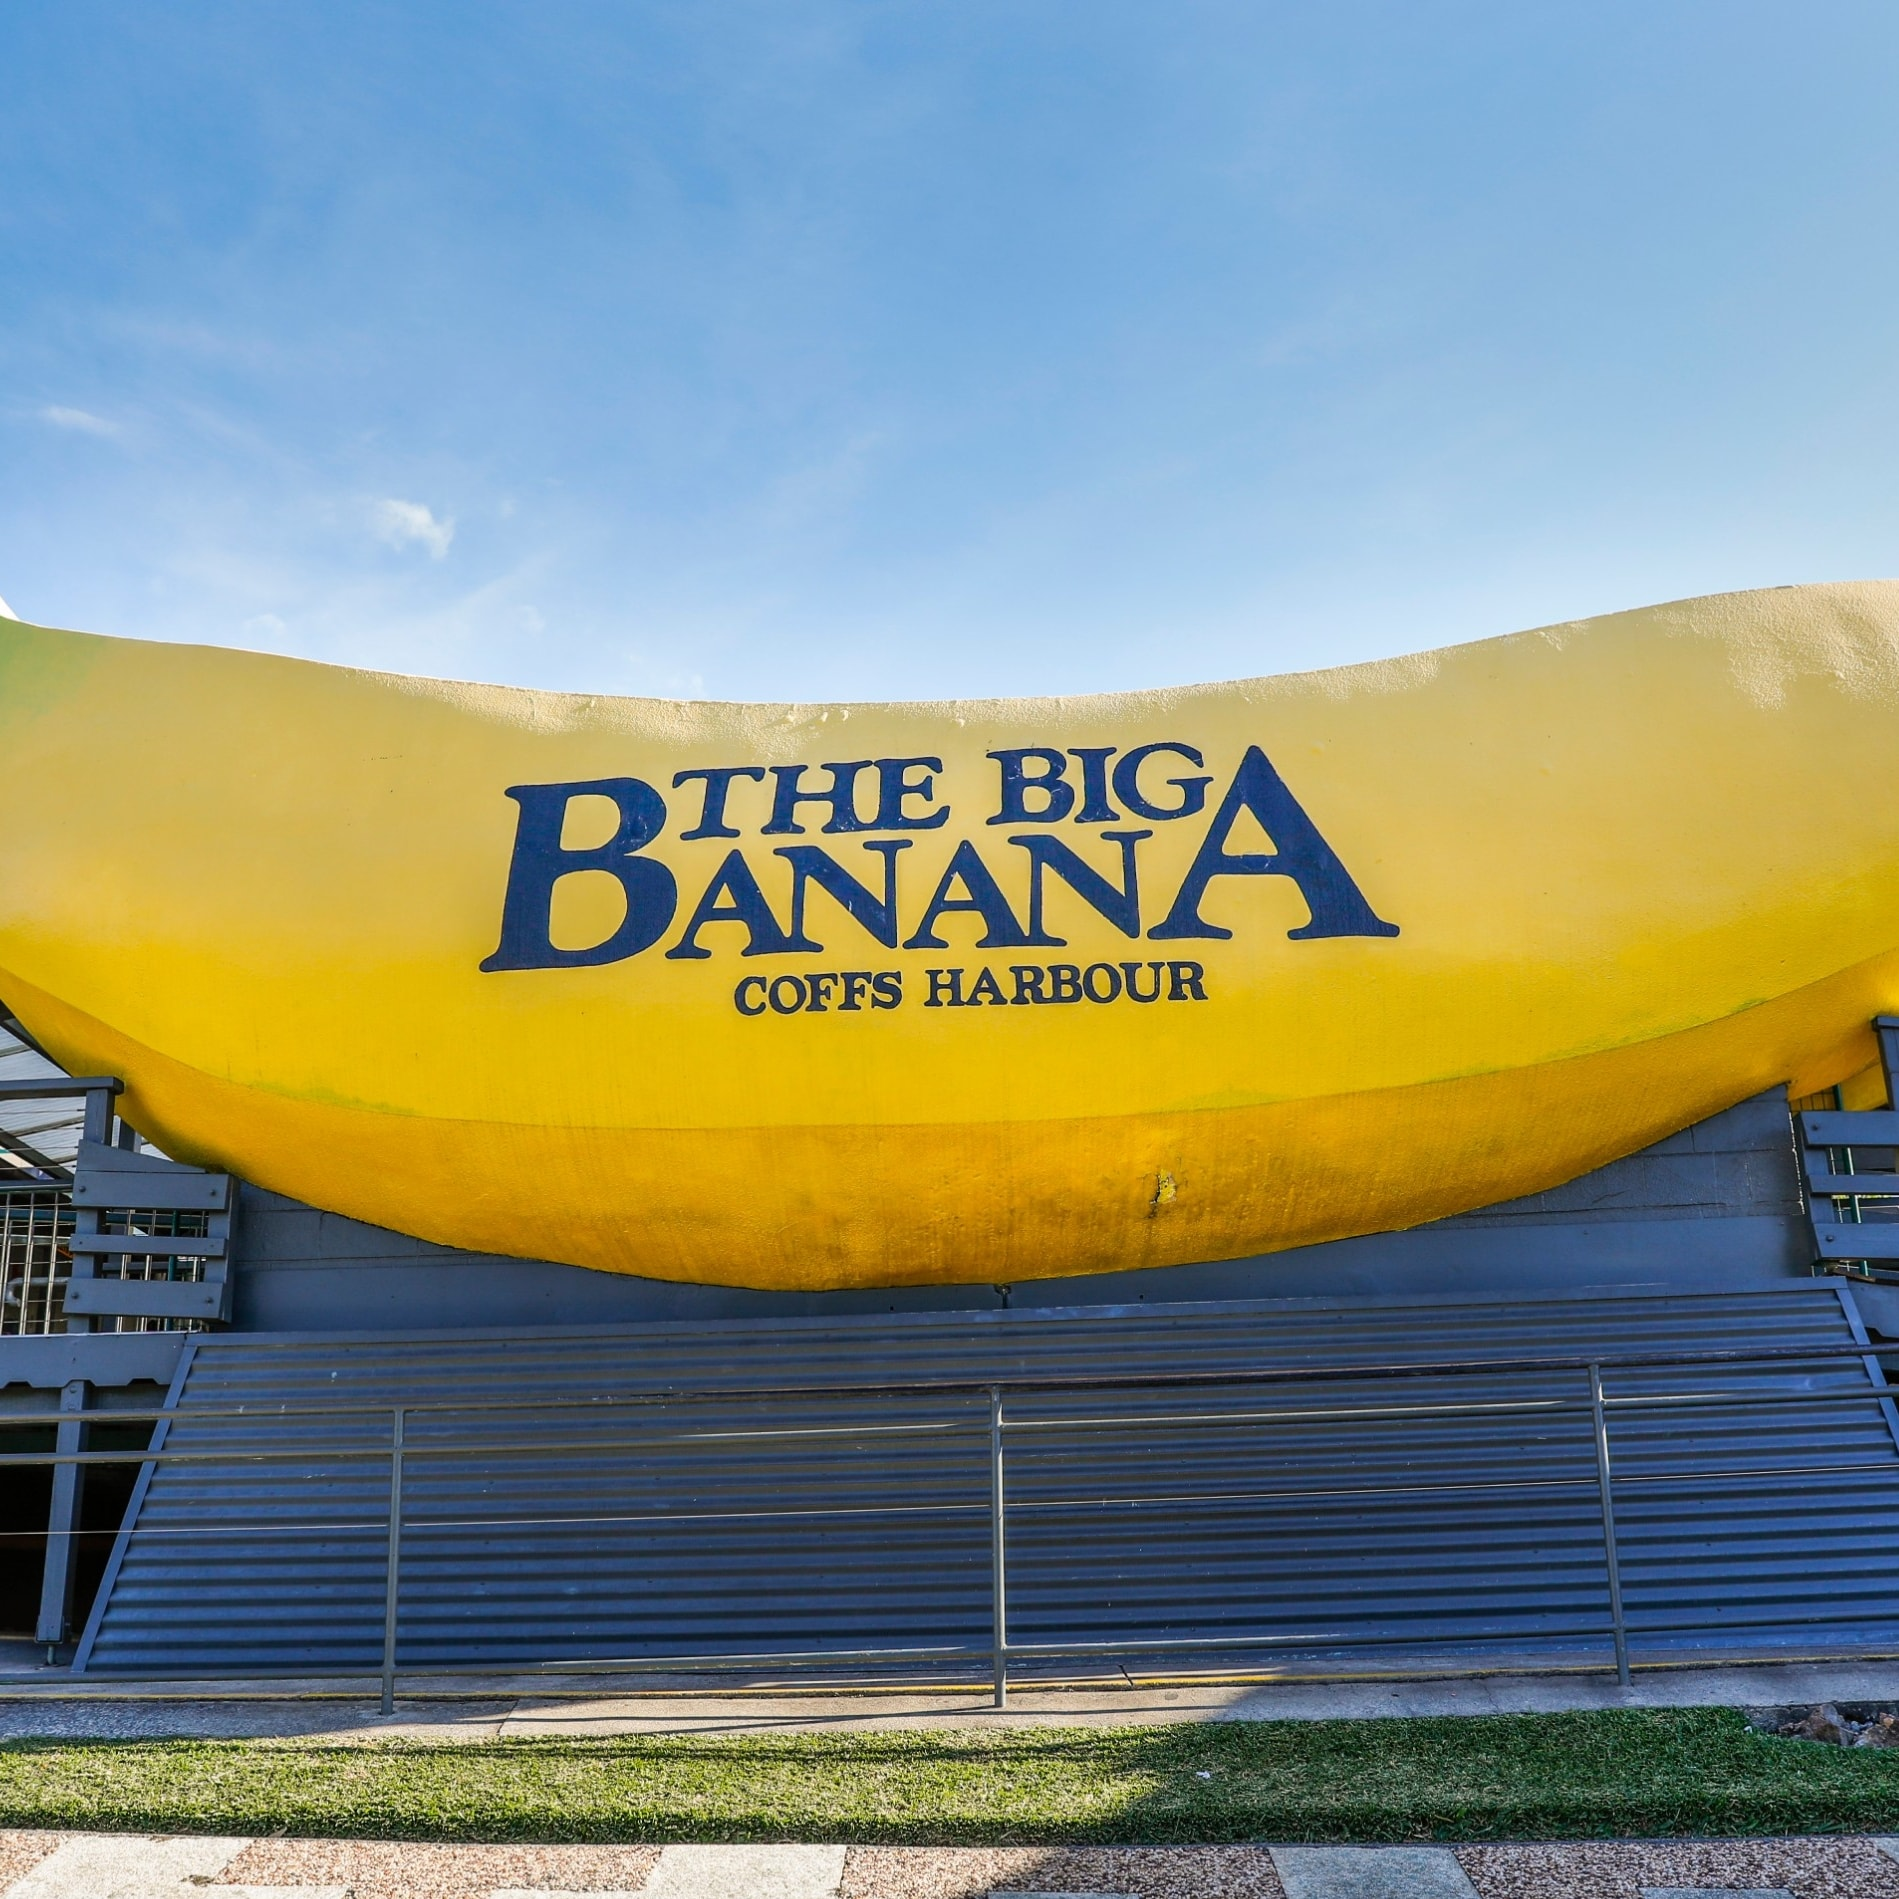 The Big Banana, Coffs Harbour, NSW © Destination NSW